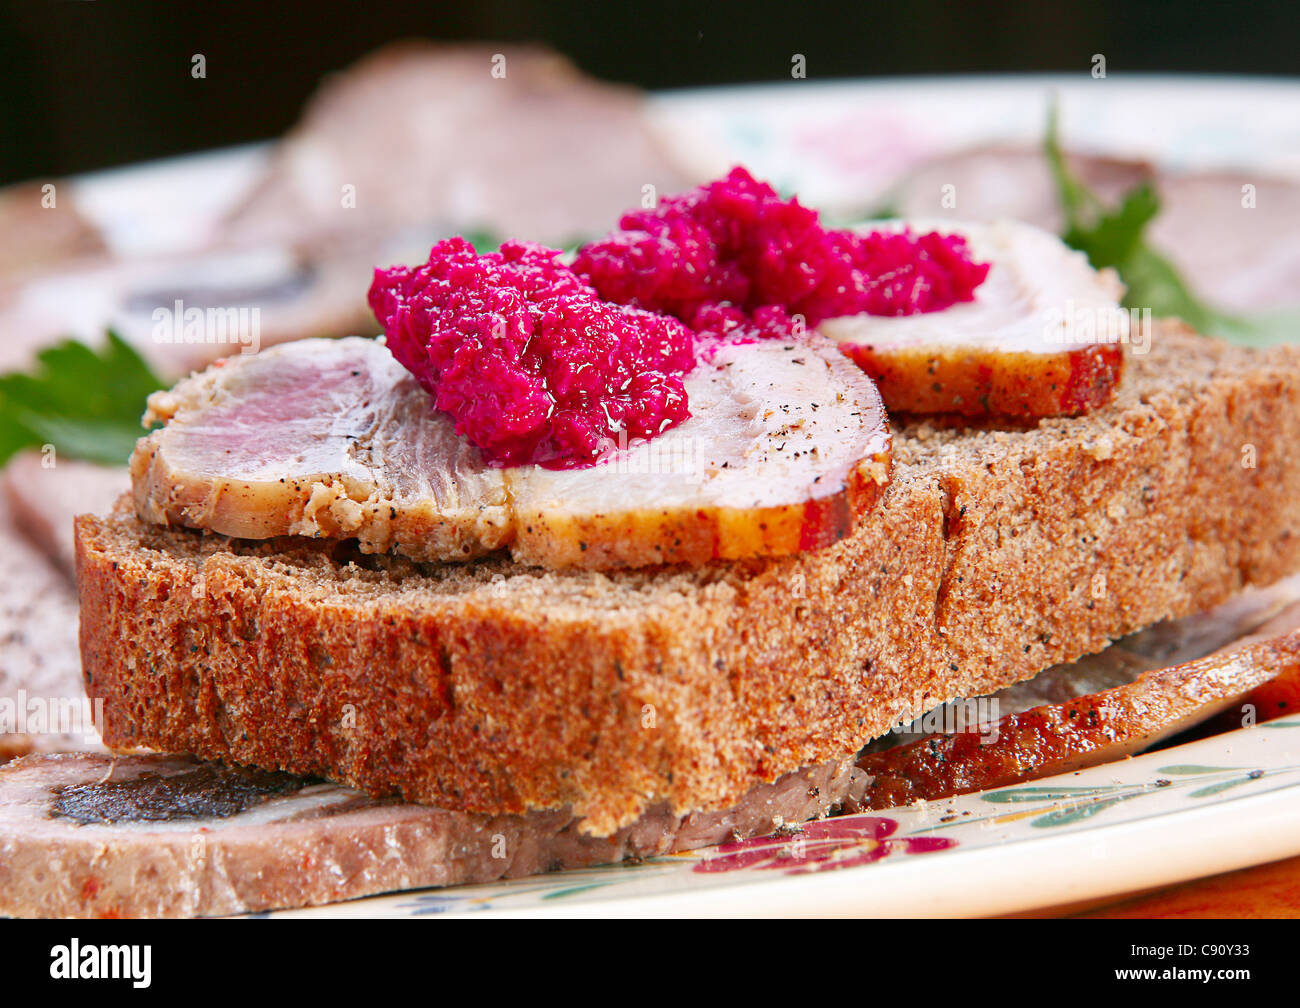 Sandwich with fat slice and horseradish - Stock Image